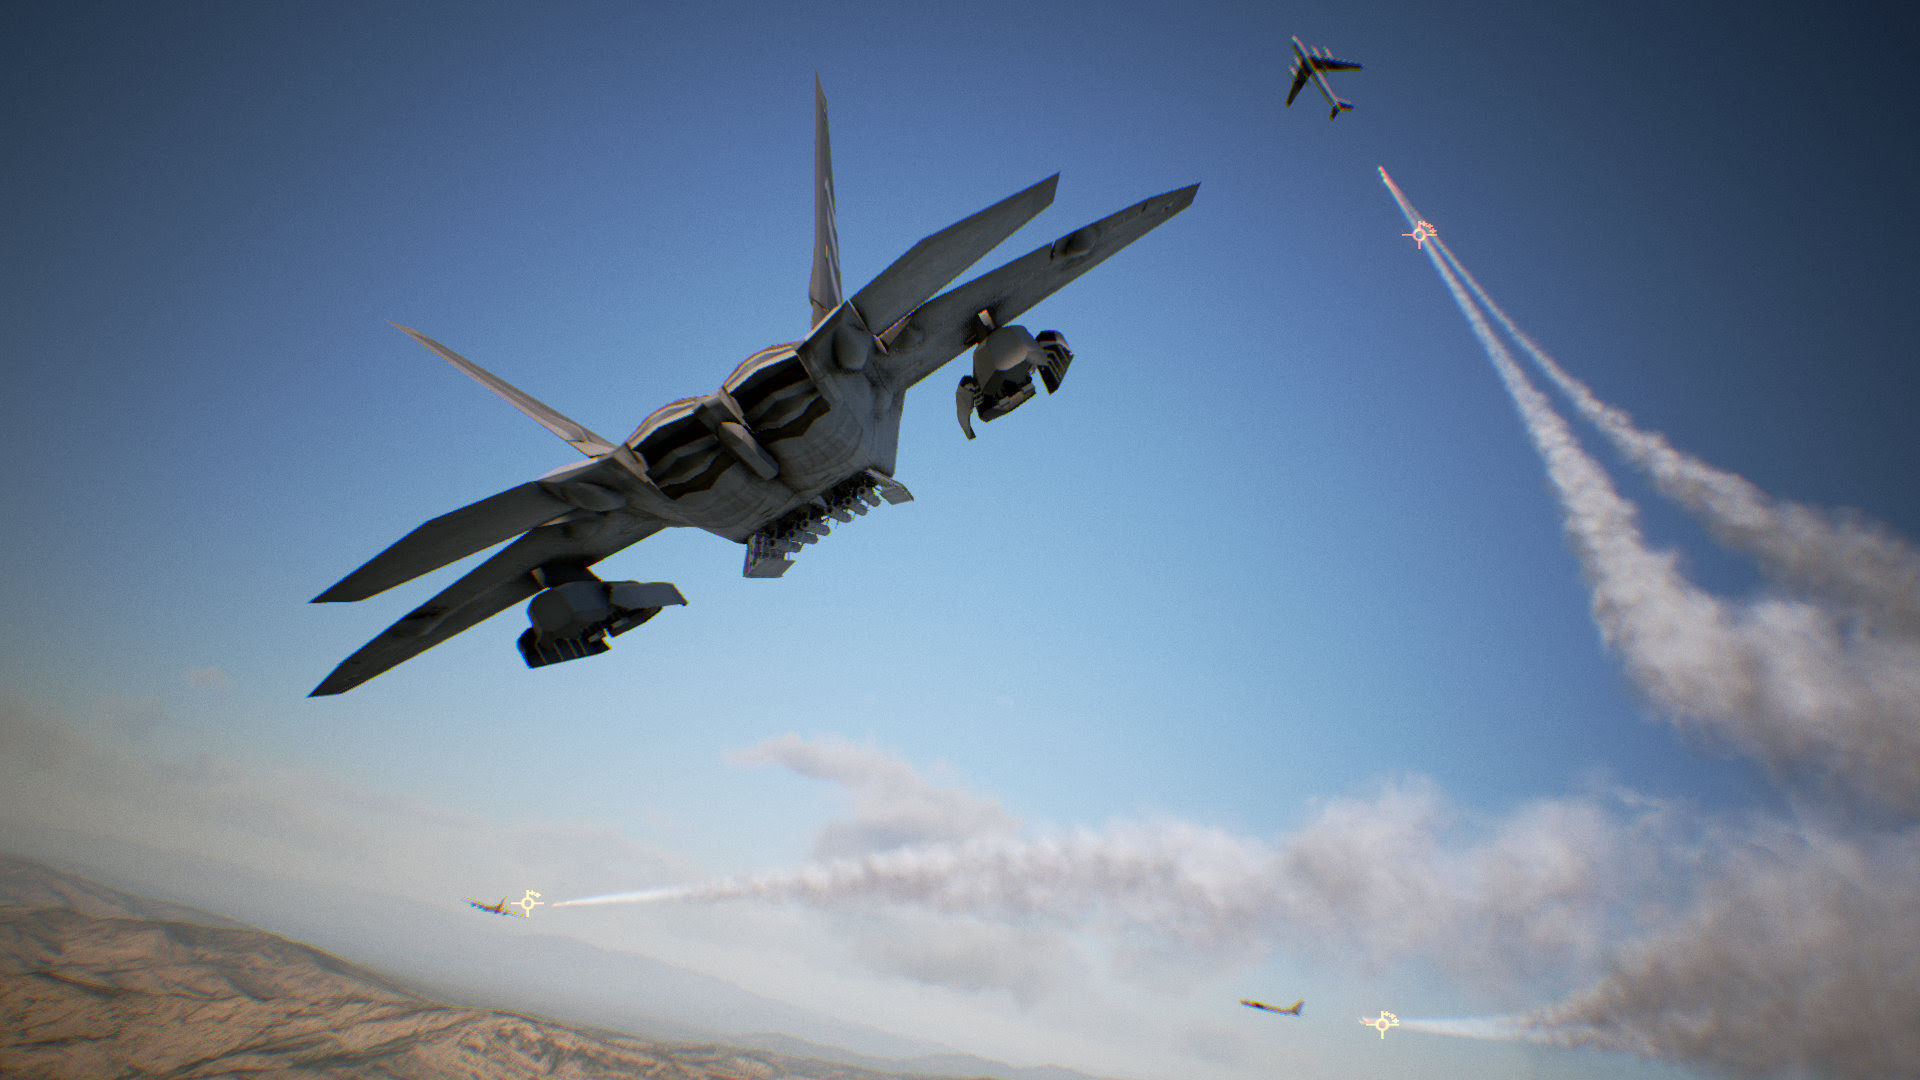 Watch 14 minutes of Ace Combat 7 footage with no sappy story screenshot